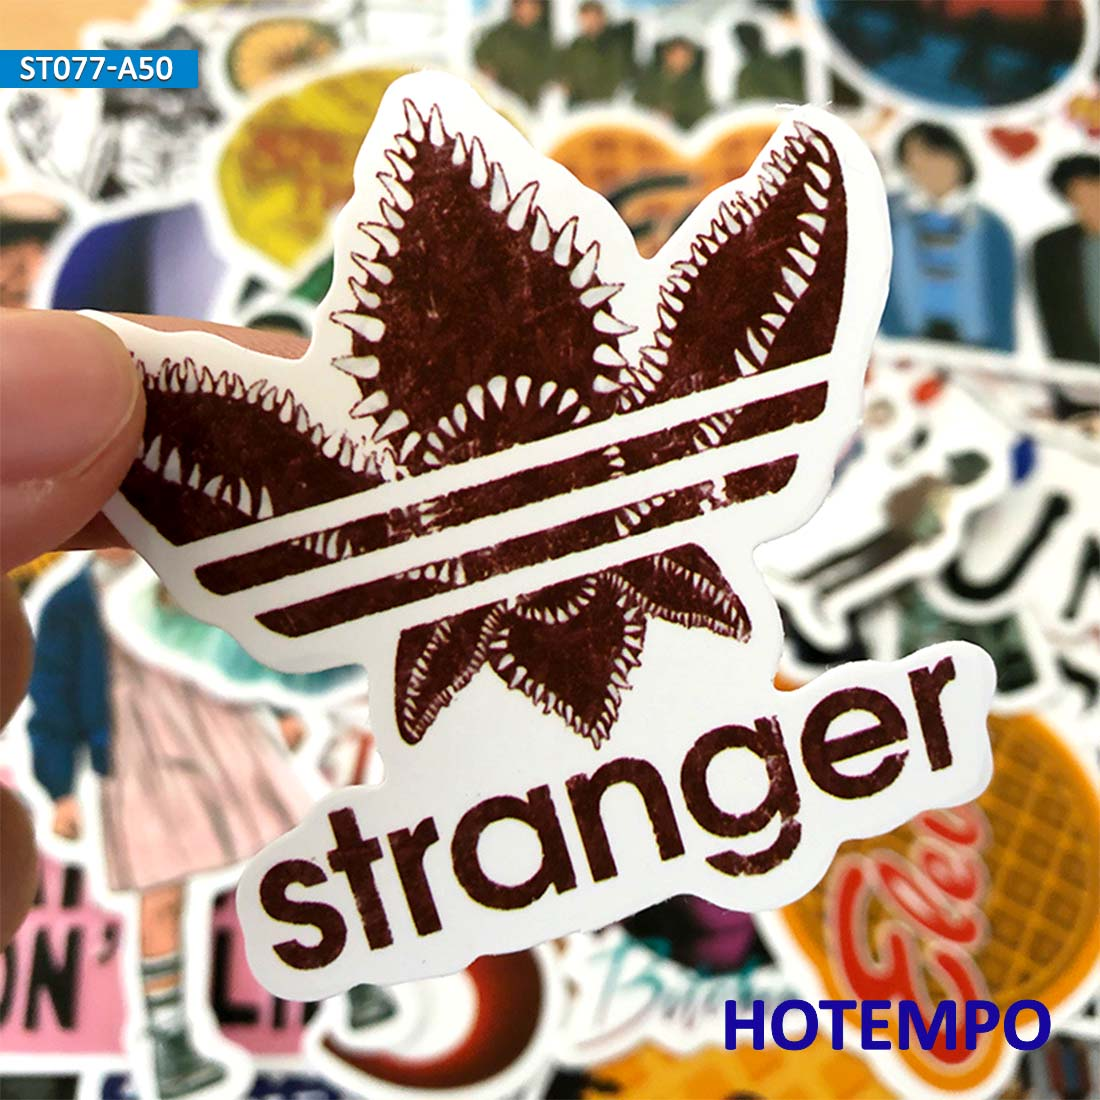 50pcs Stranger Things US TV Style Stickers For Mobile Phone Laptop Luggage Guitar Case Suitcase Skateboard Helmet Decal Stickers